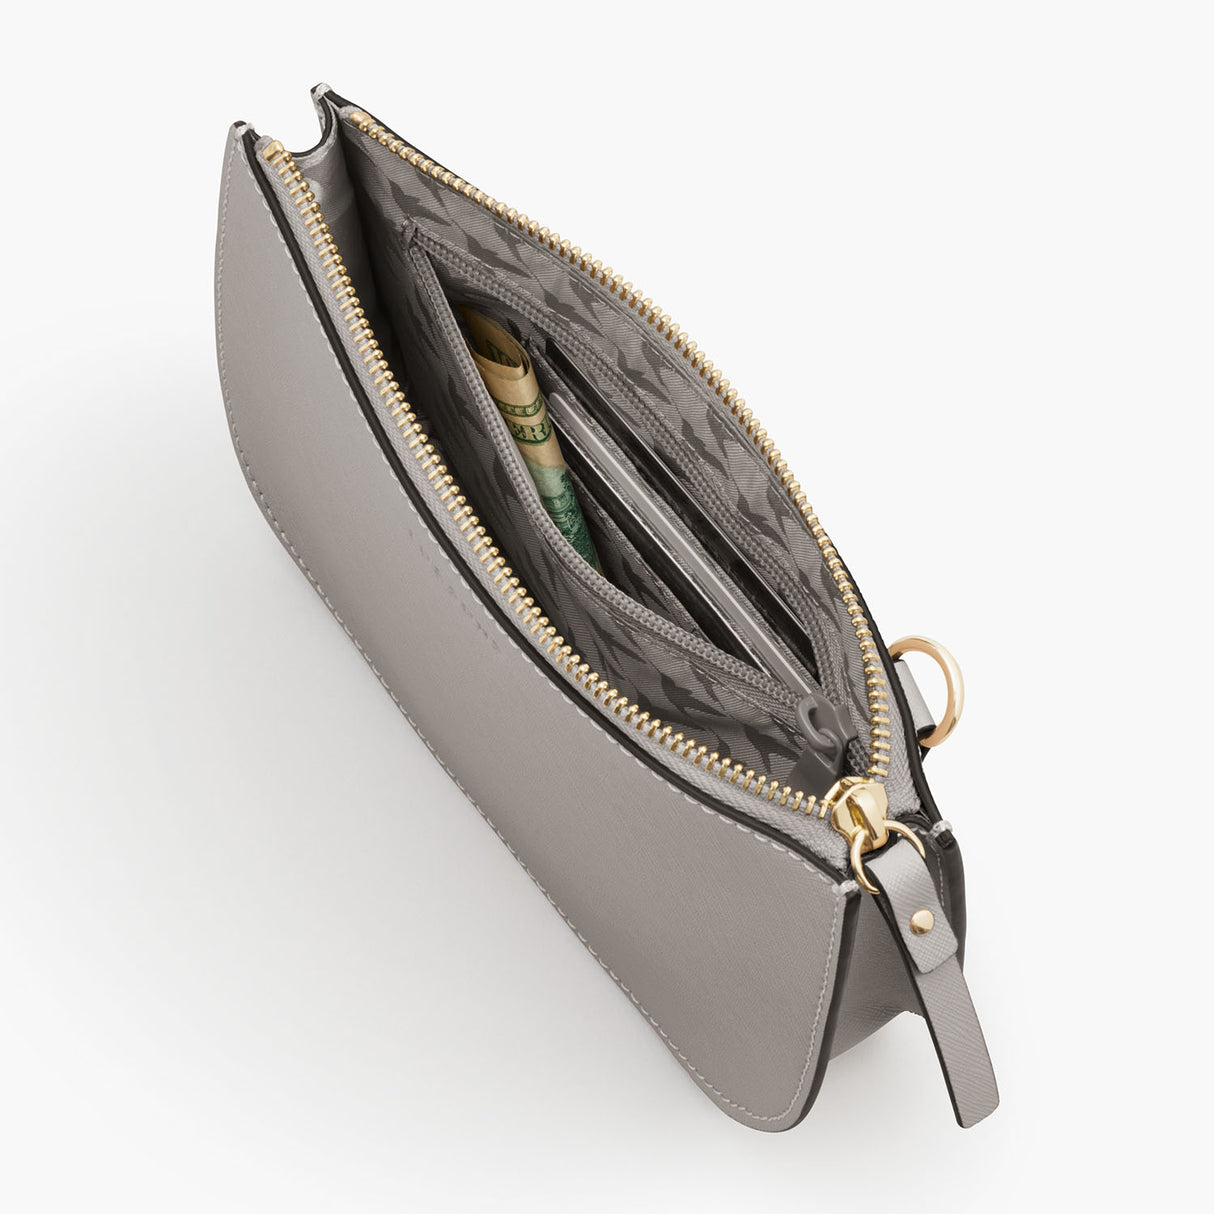 Interior Zipper - The Waverley 2 - Saffiano Leather - Light Grey / Gold / Grey - Crossbody - Lo & Sons